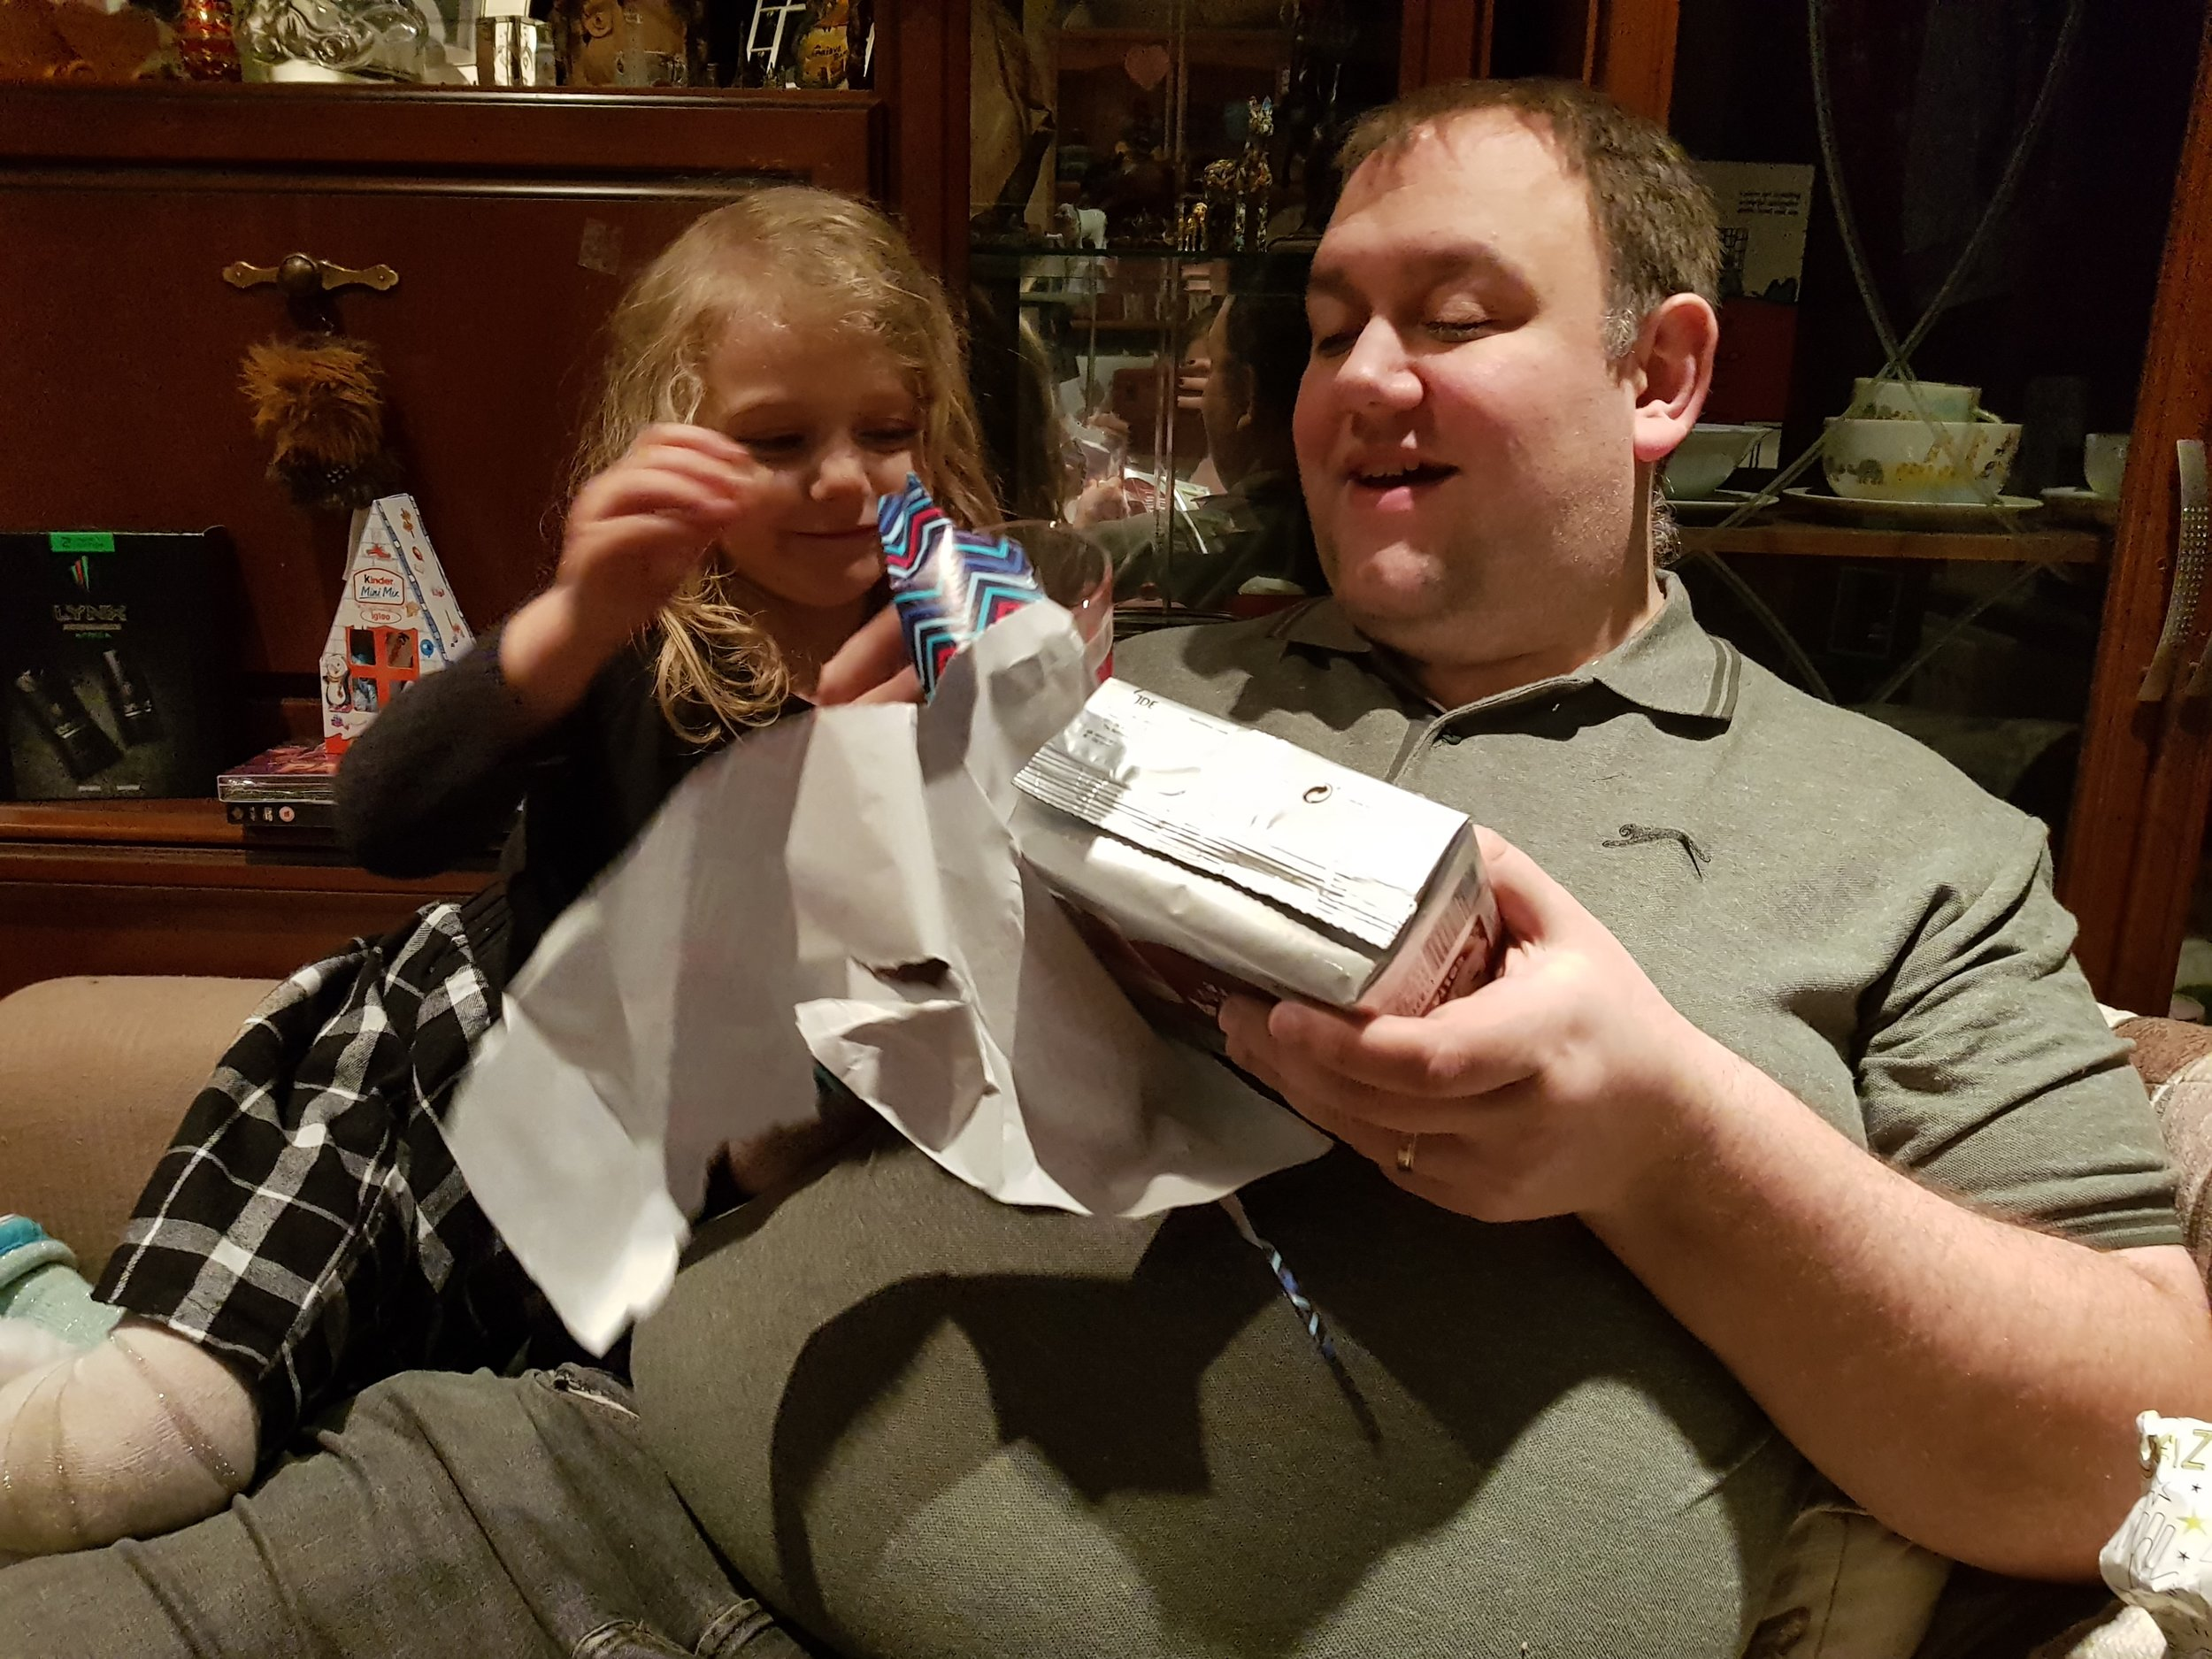 My husband opening his birthday gifts